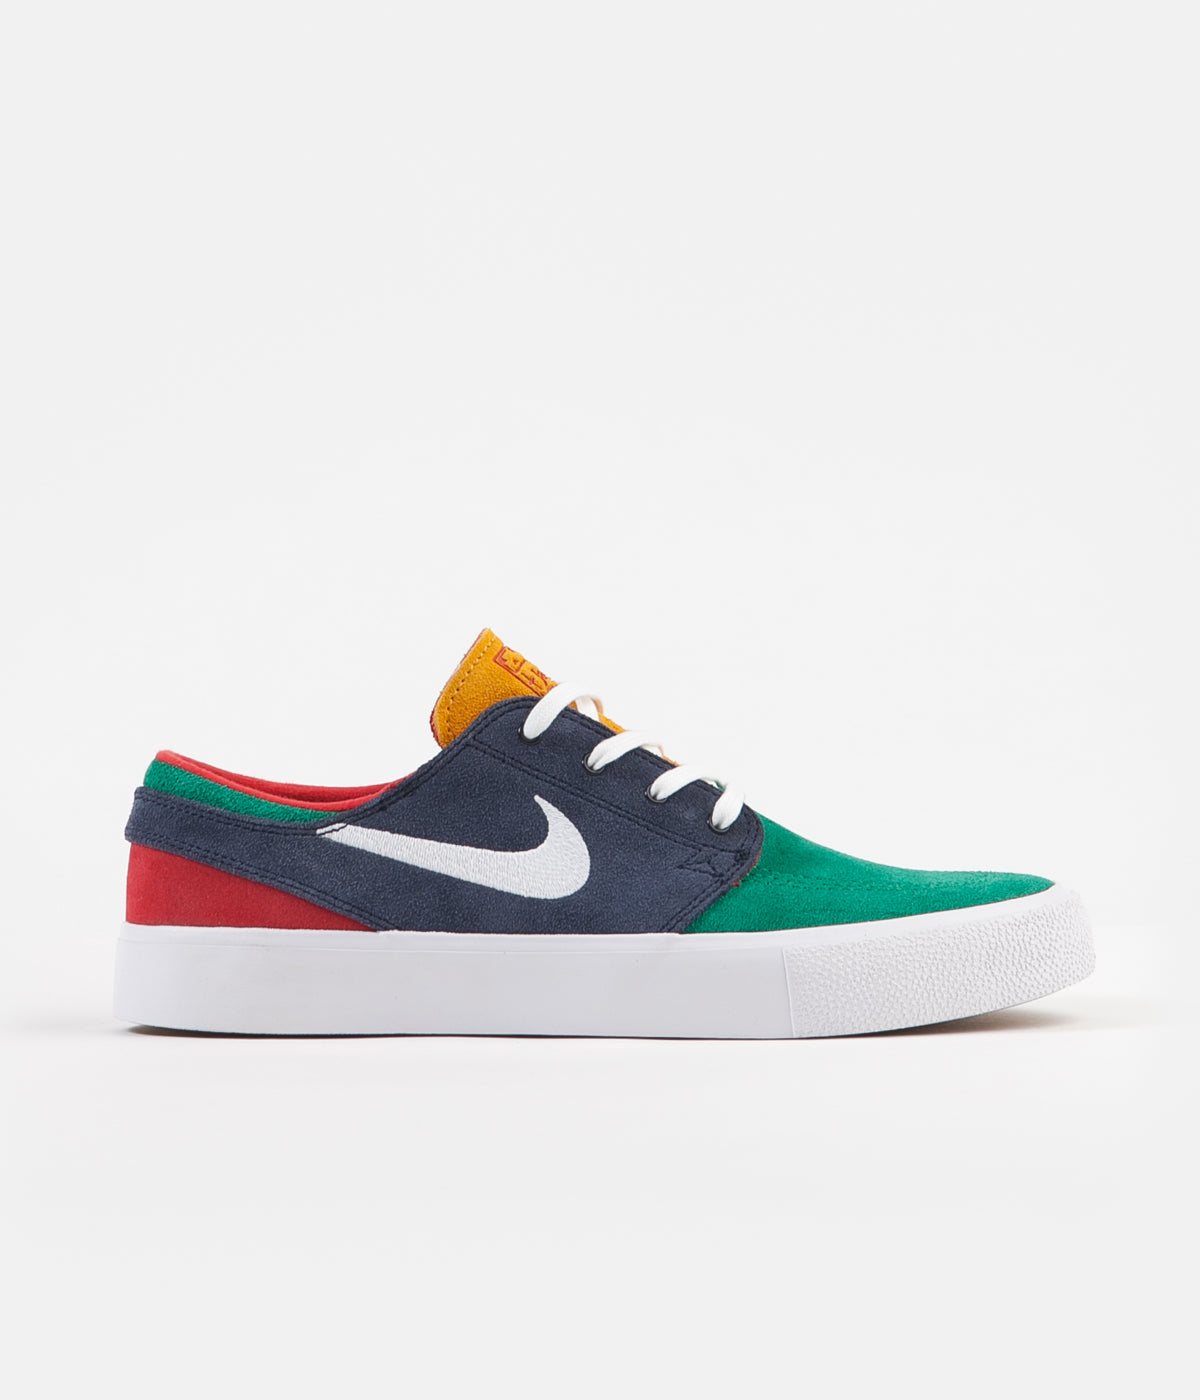 66a7ea334 Nike SB Janoski Remastered Shoes - Lucid Green / White - Obsidian ...